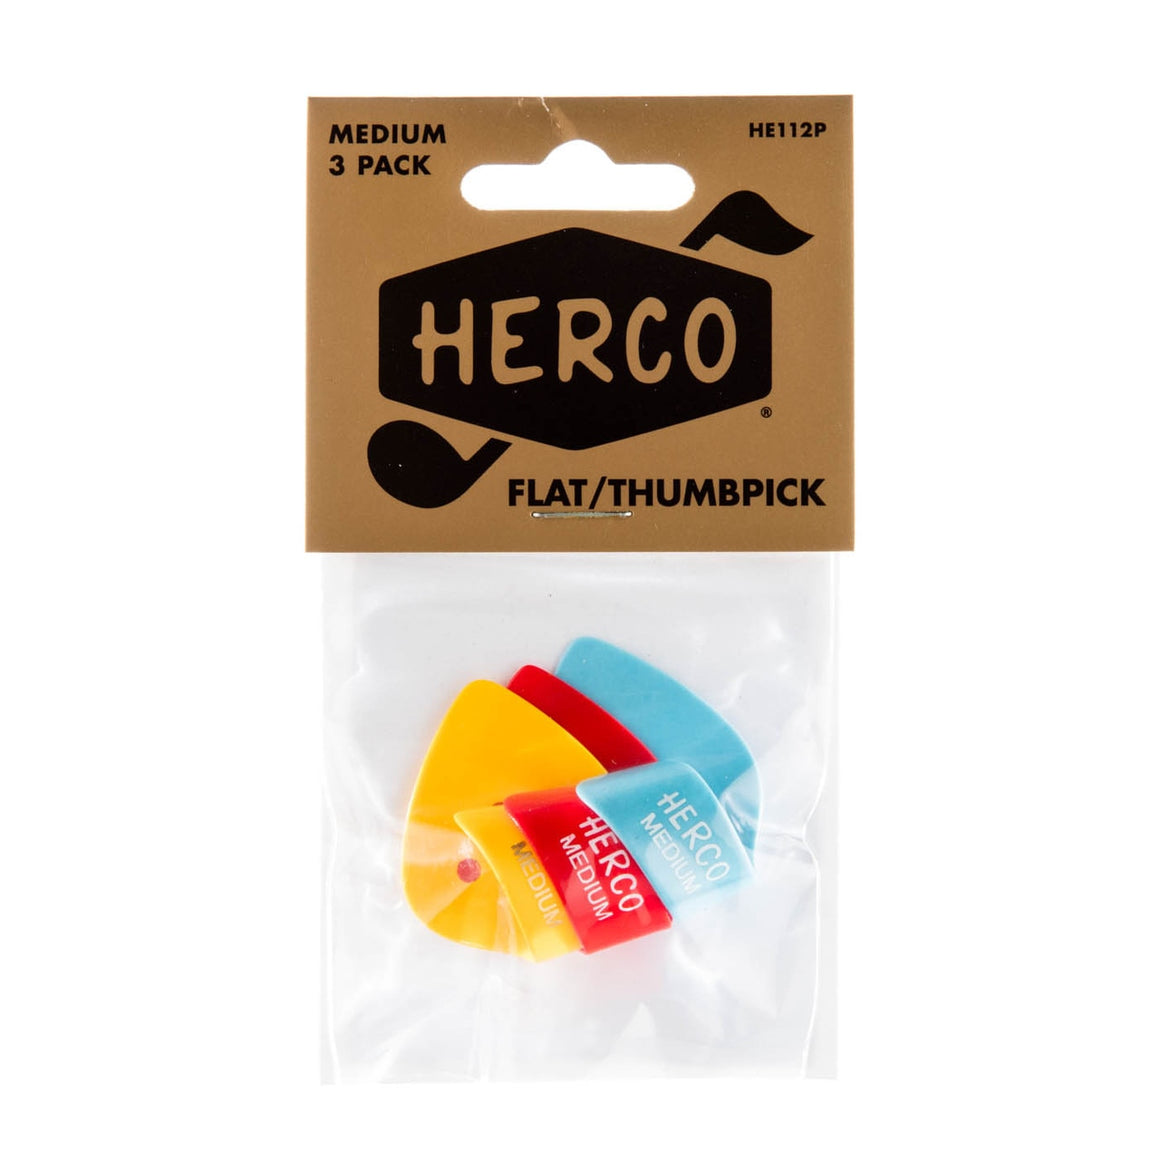 Herco Thumb Pick Medium Single